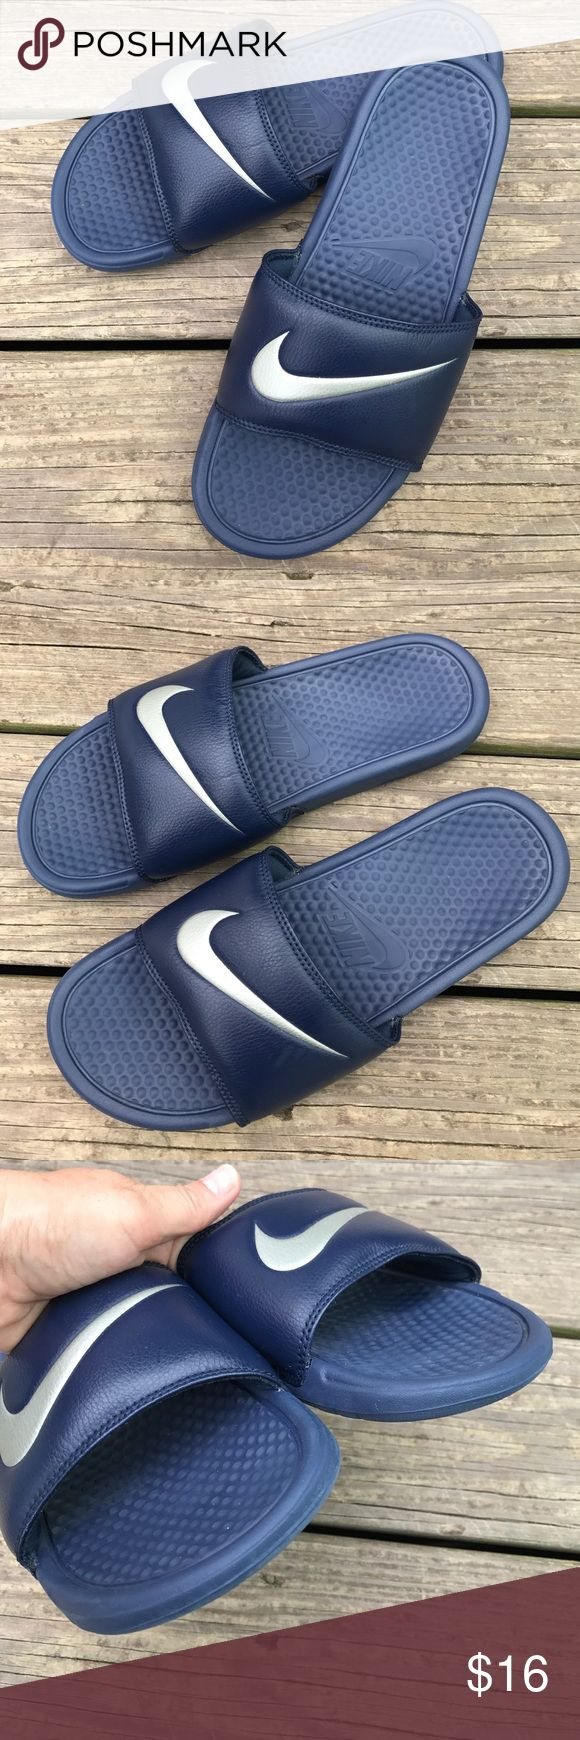 Nike Sandals Size 10, they have been worn and have much life left. Don't want to pay shipping for just one item? I get it! Peruse my closet for other men's items! Nike Shoes Sandals & Flip-Flops